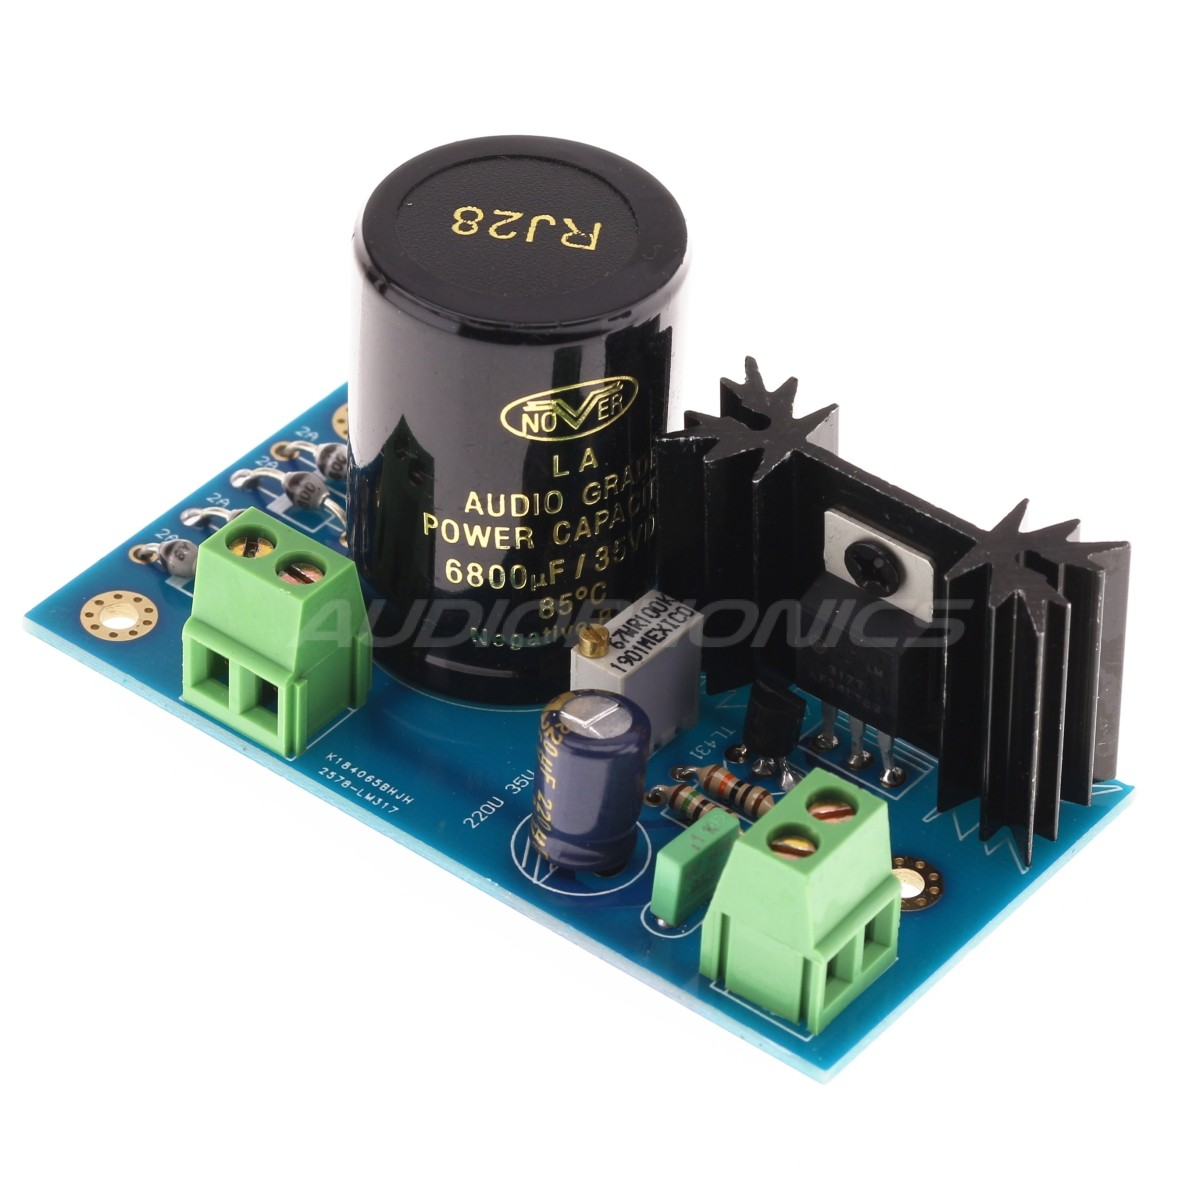 Regulated Linear Power Supply AC-DC LM317 / TL431 37V 1.5A